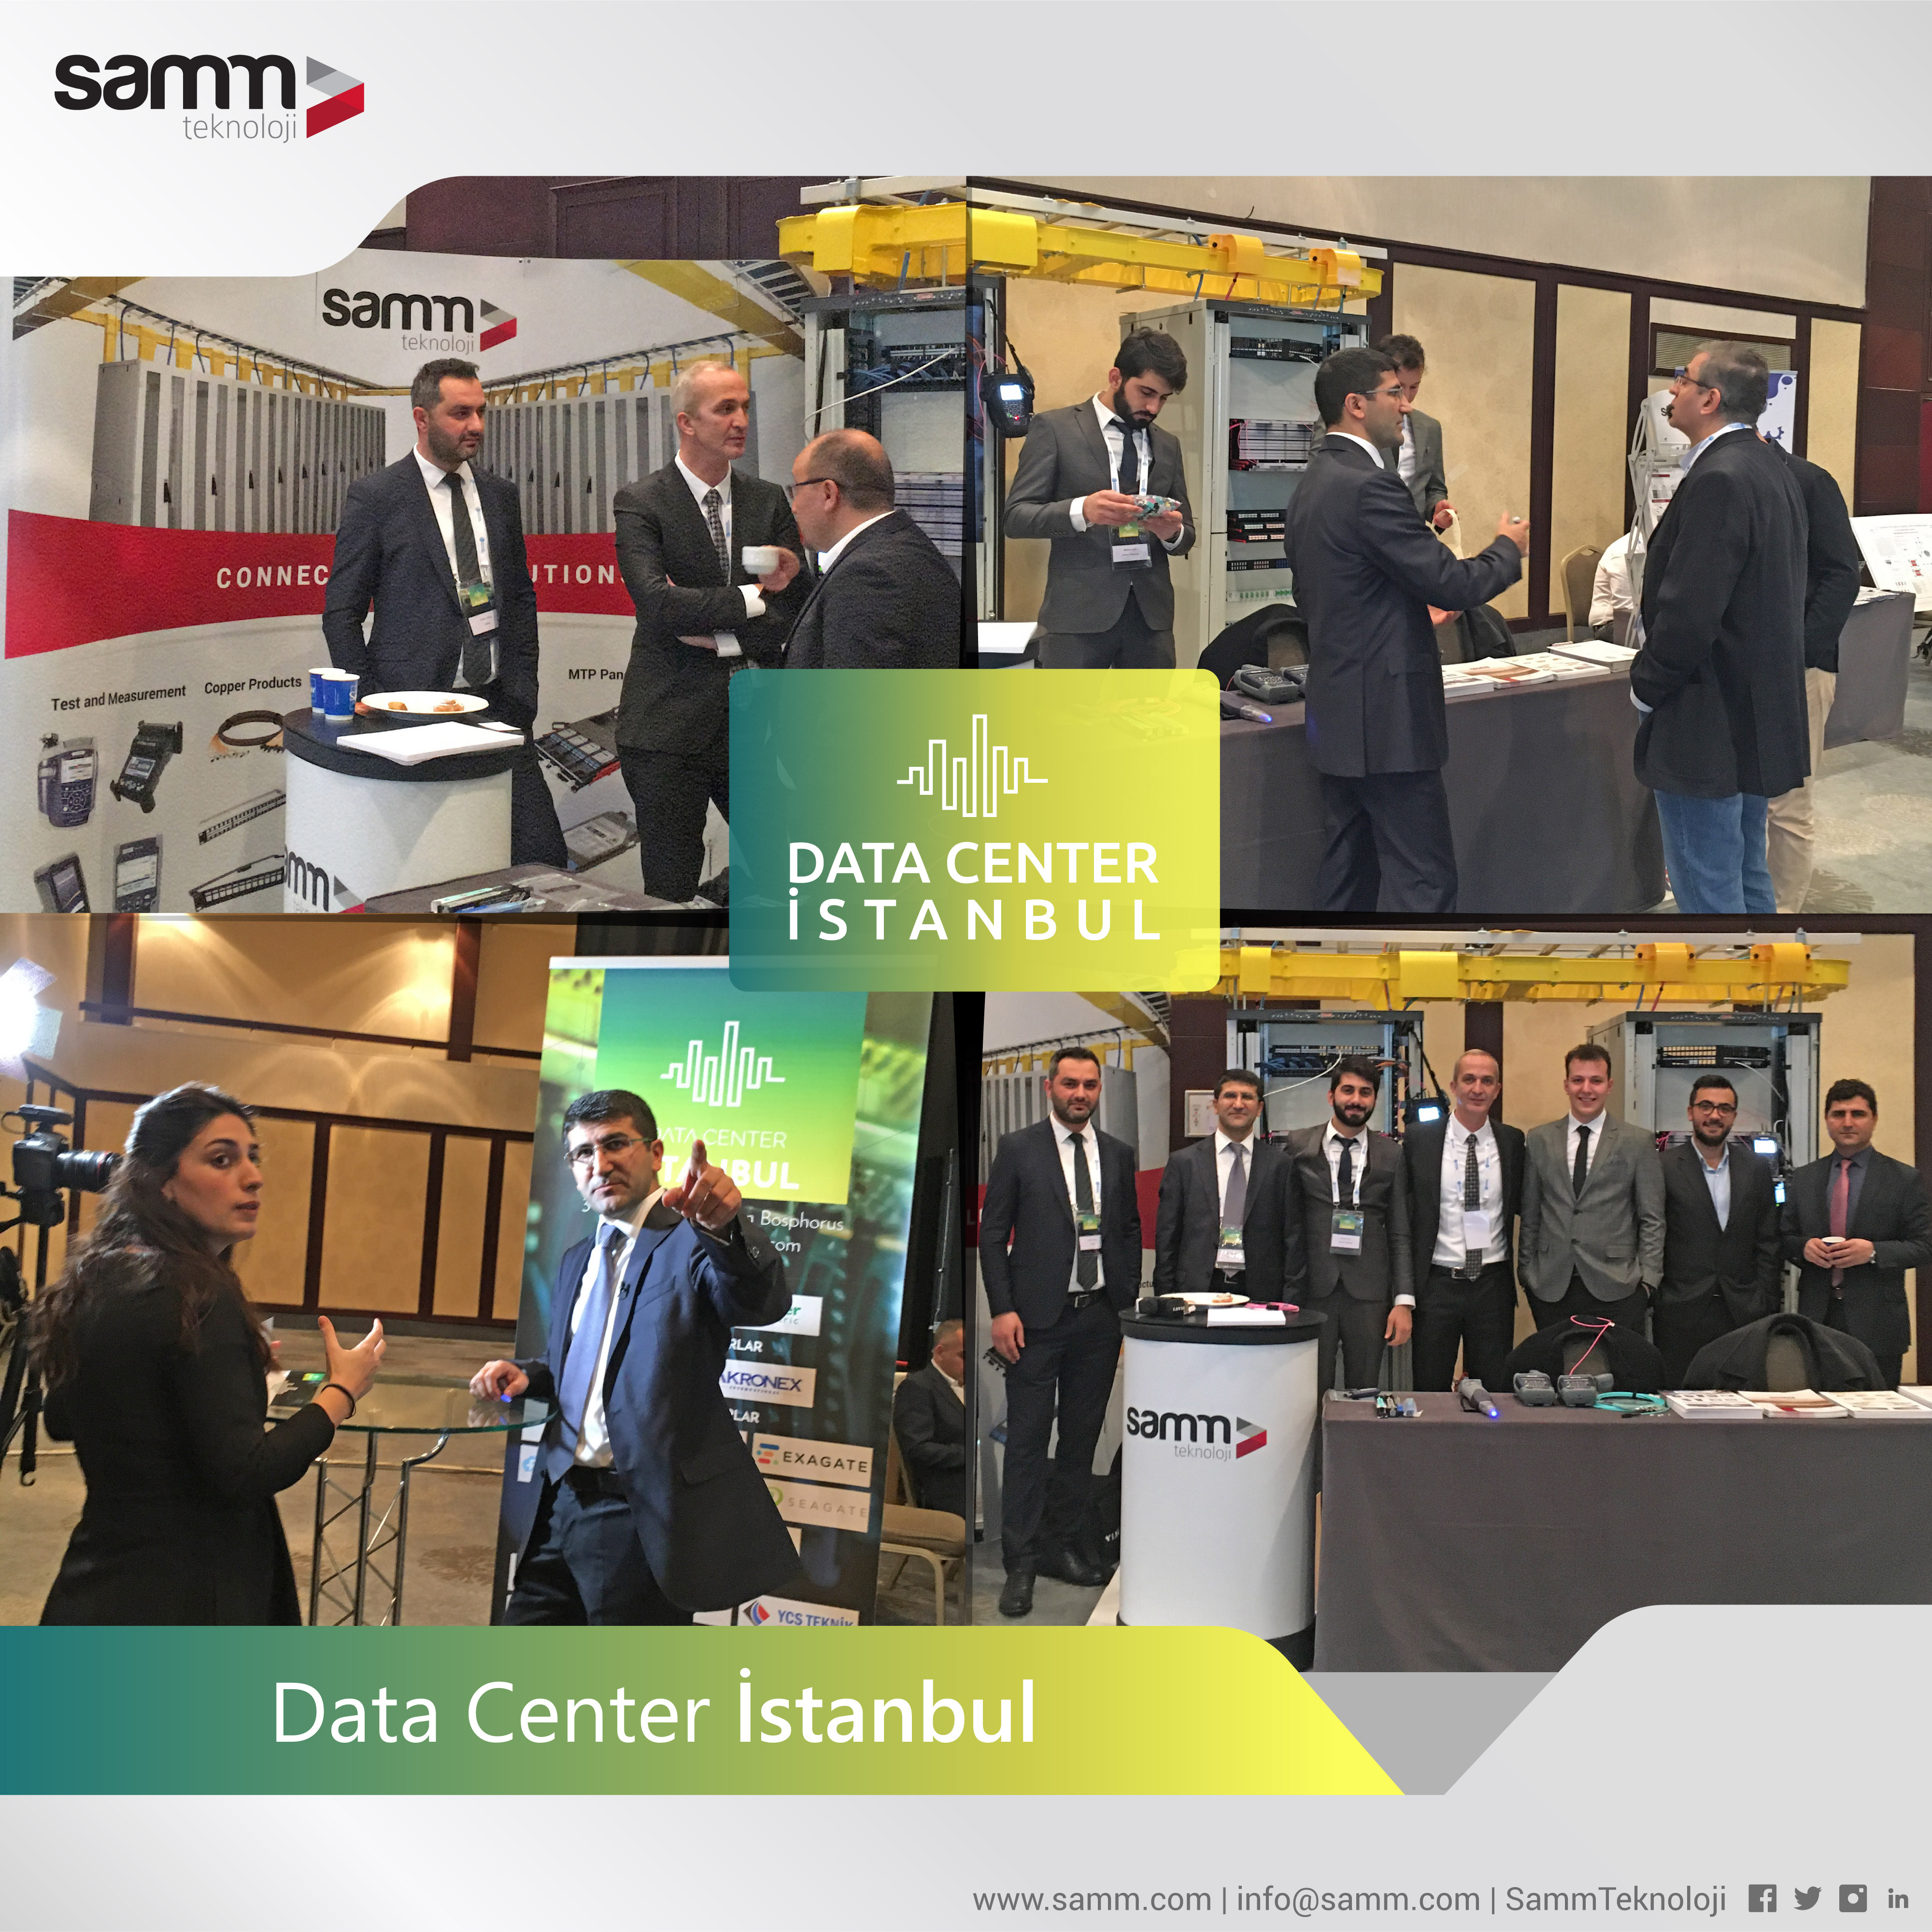 Our Participation at The Data Center Istanbul Exhibition